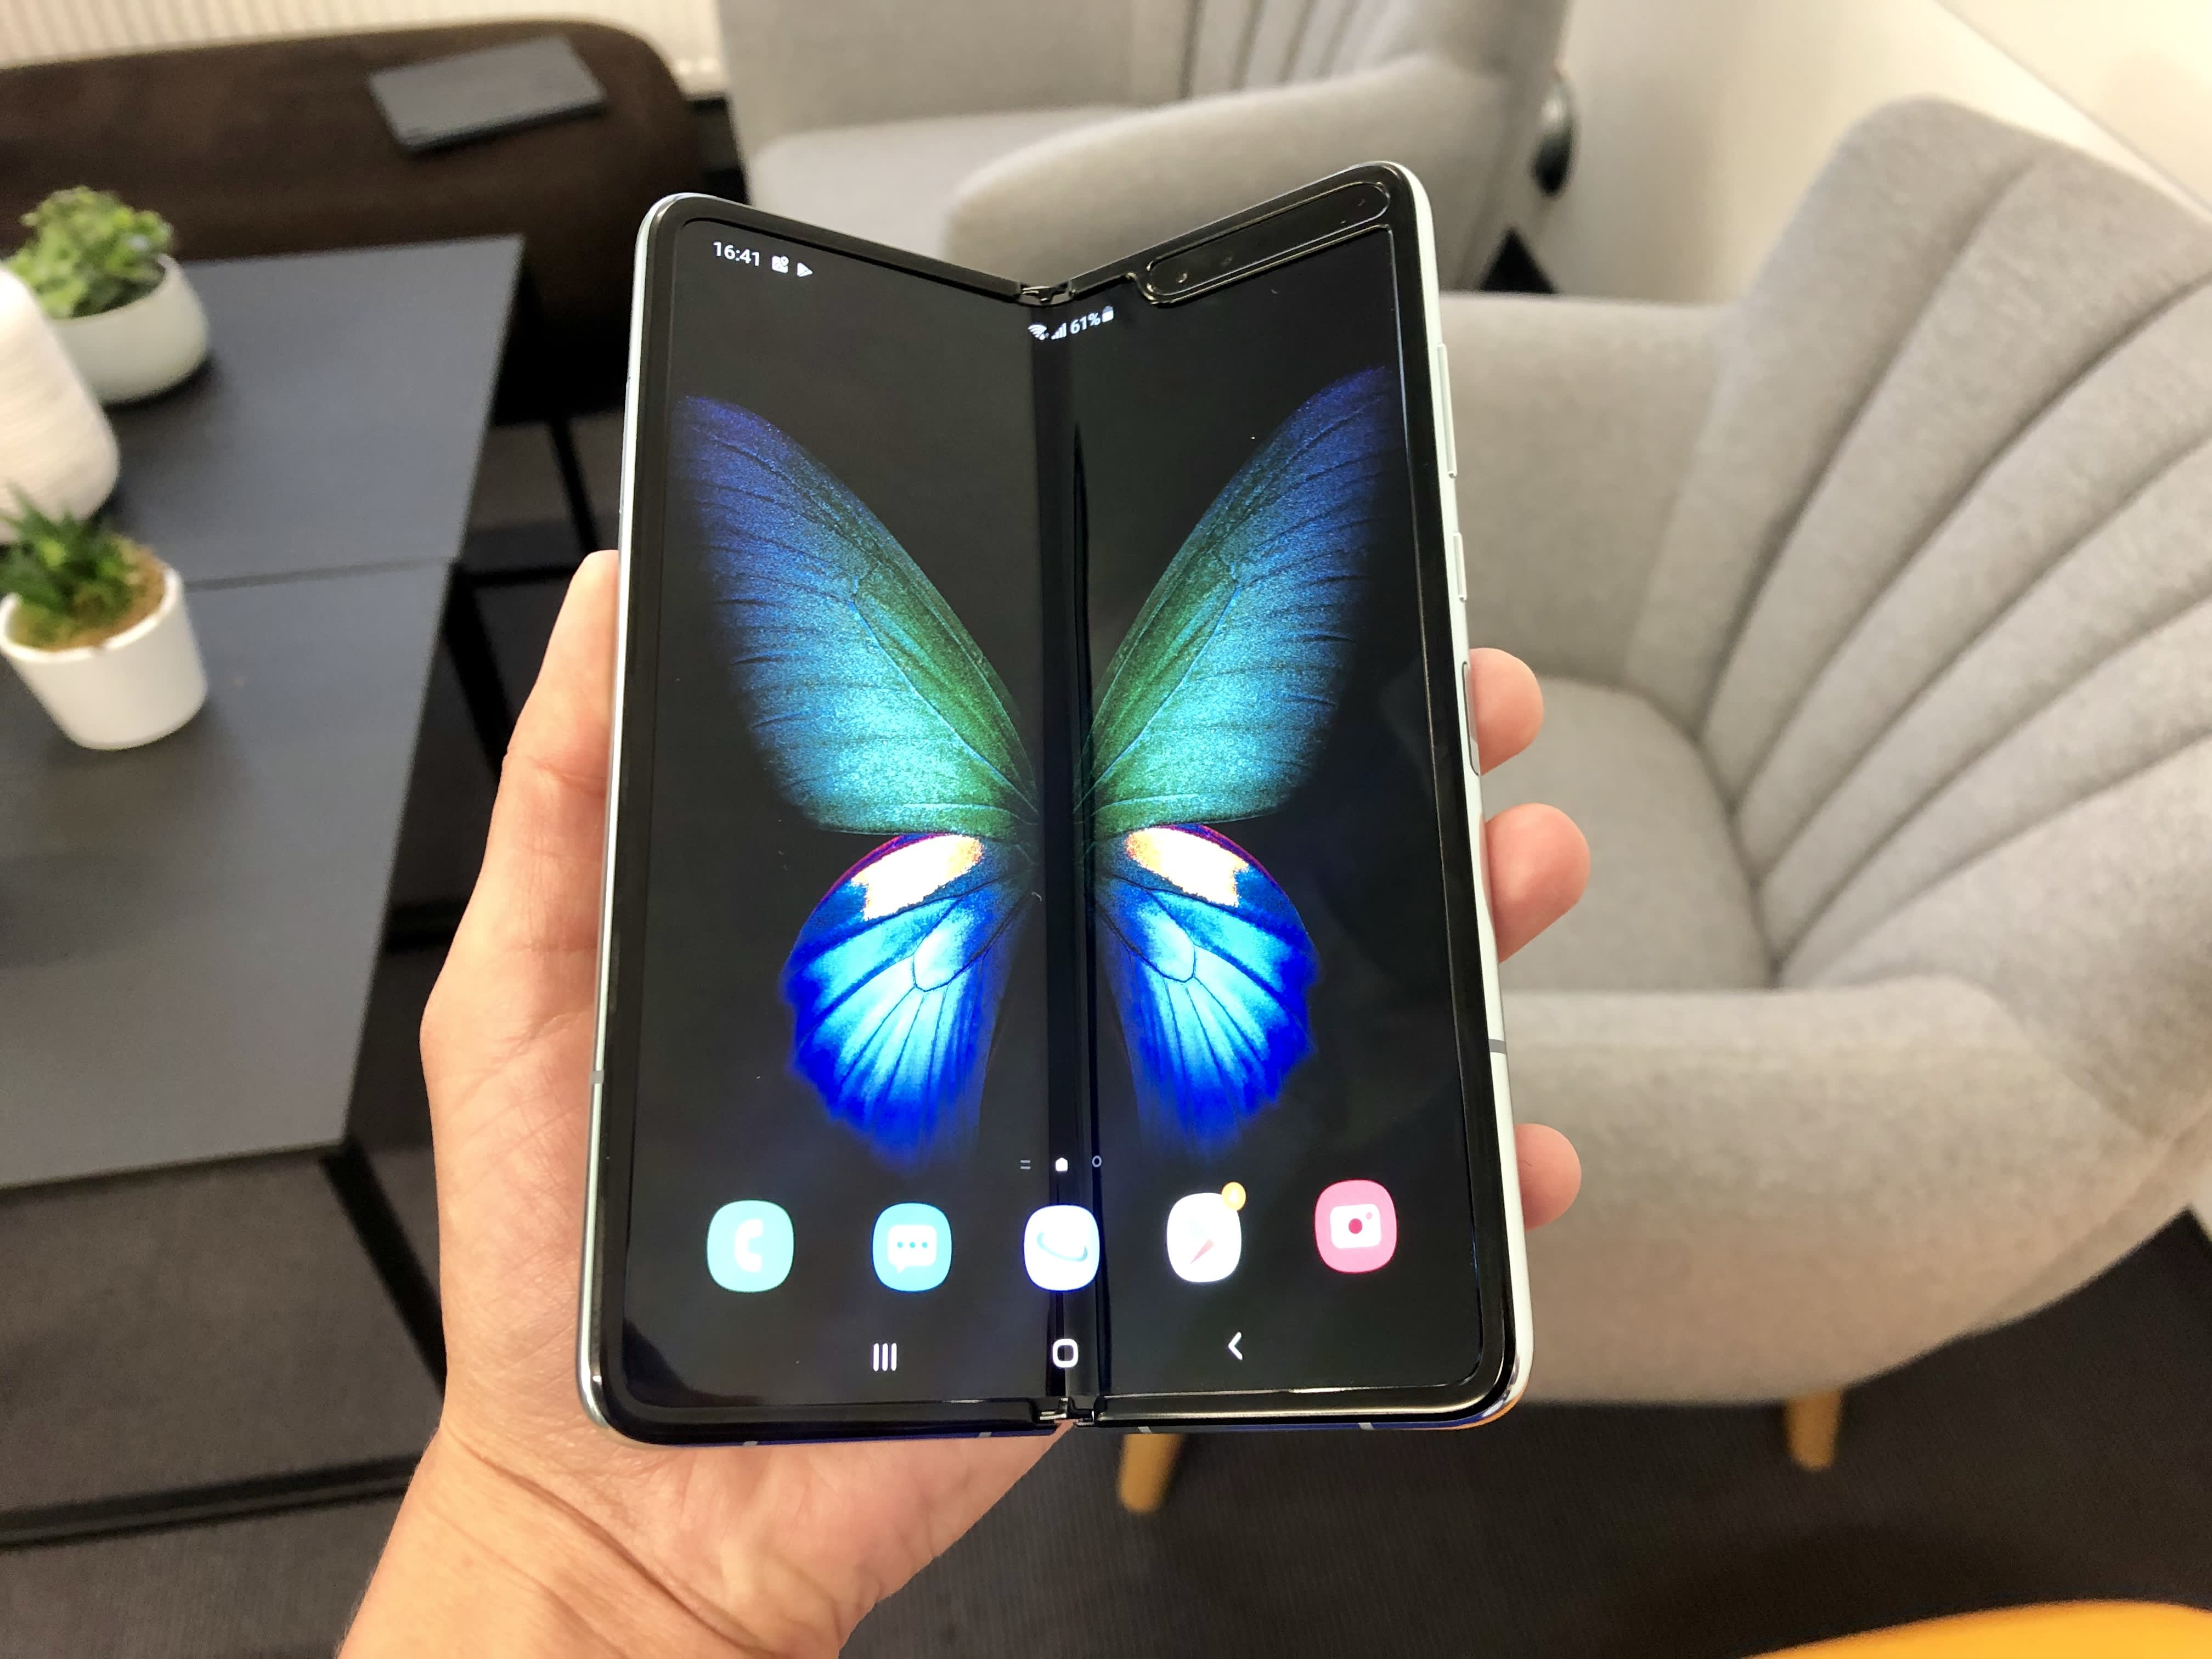 Samsung's $2,000 folding phone launches after months of delays, but it might still be too delicate and break